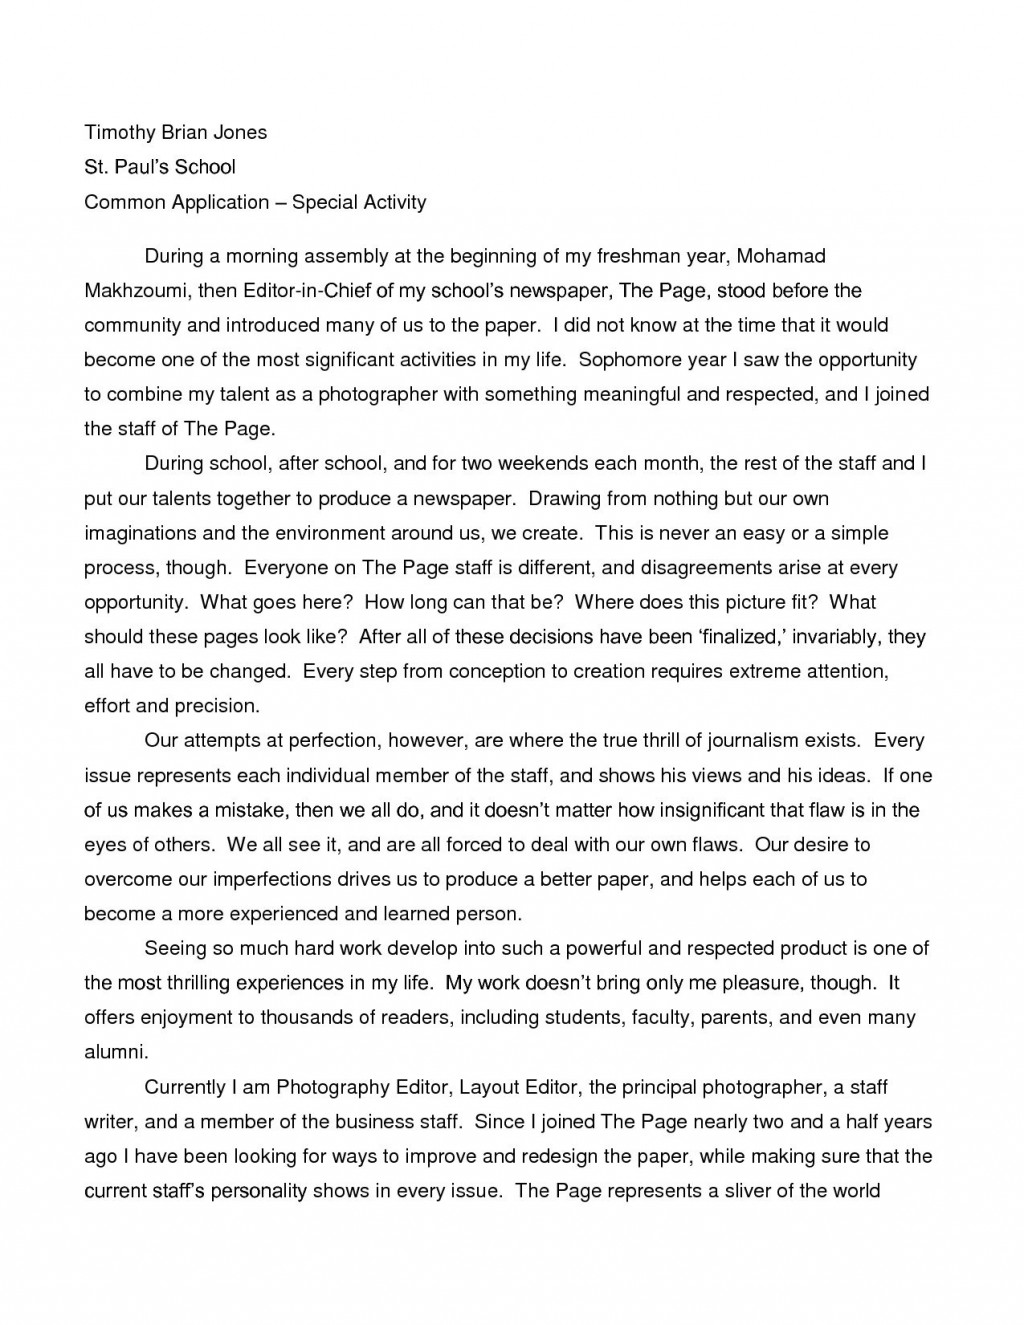 006 Persuasive Essays Proper Format For Essay Coursework Help Qnpaperuplf Examples 5th Grade Of High School Personal Narrative Intended Argumentati Middle Pdf Writing About Love Incredible Topics Schoolers Ready Large